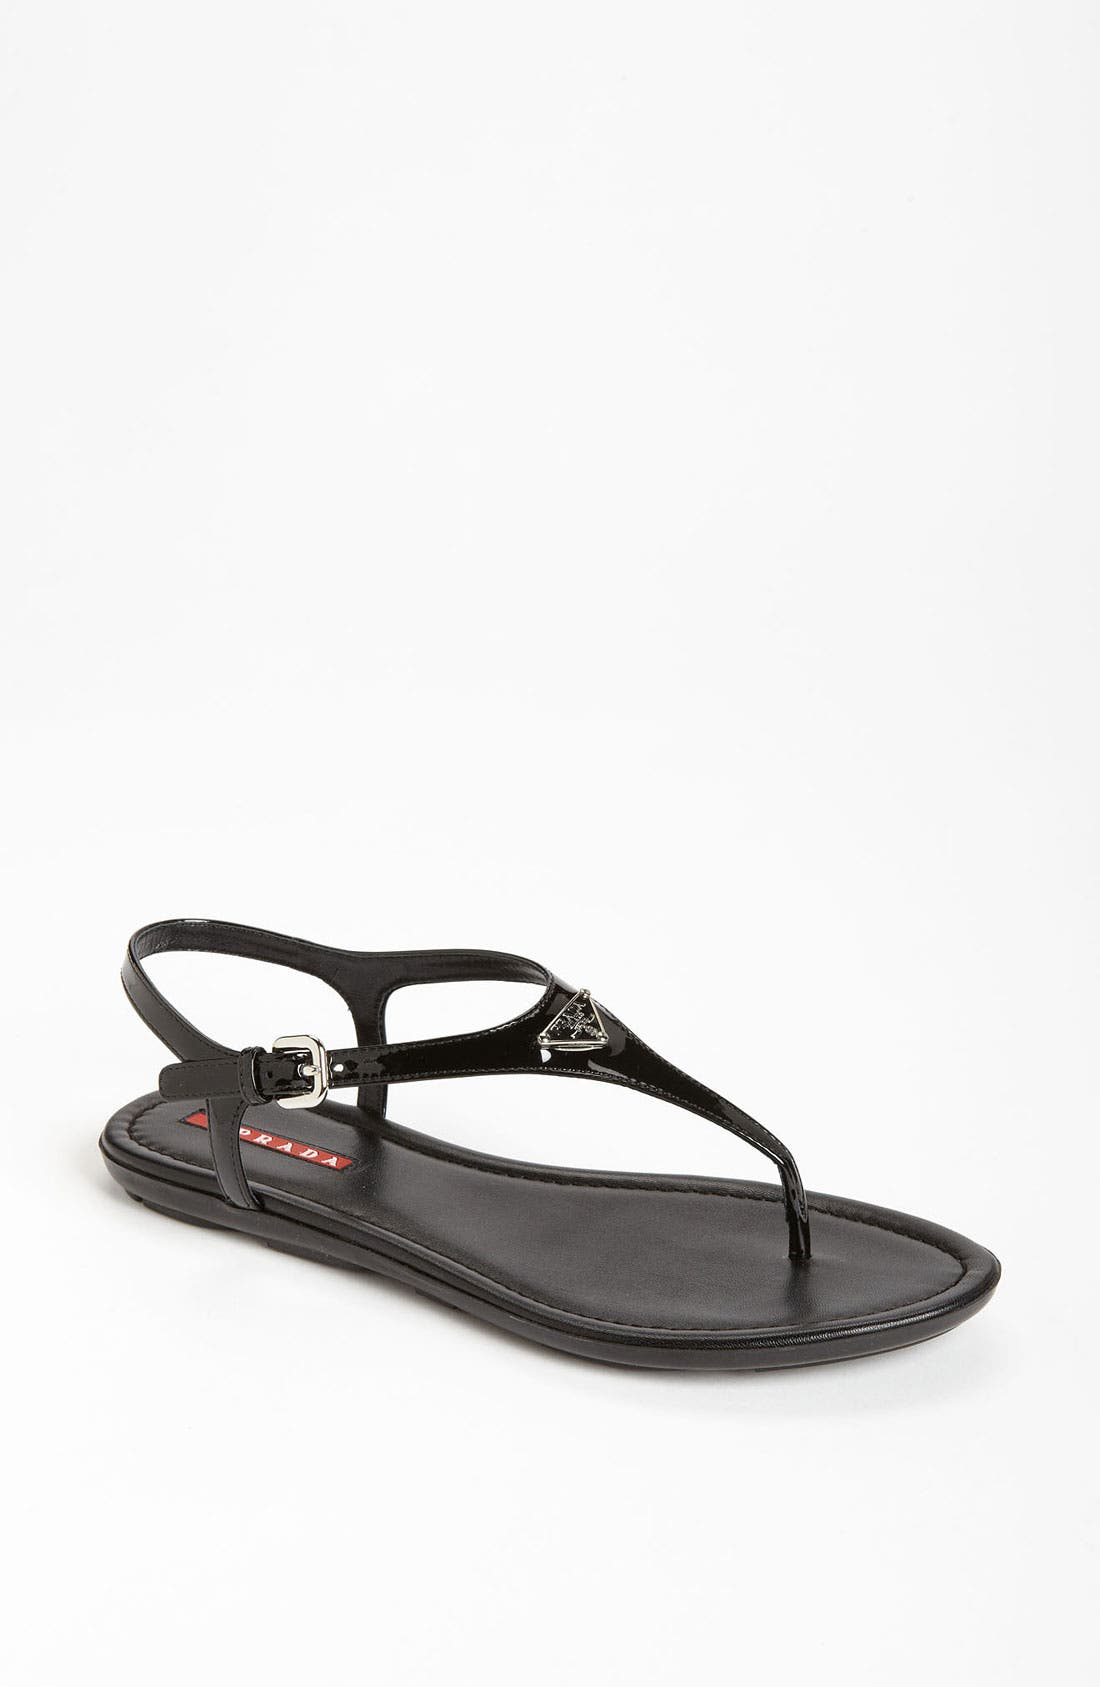 Alternate Image 1 Selected - Prada Logo Thong Sandal